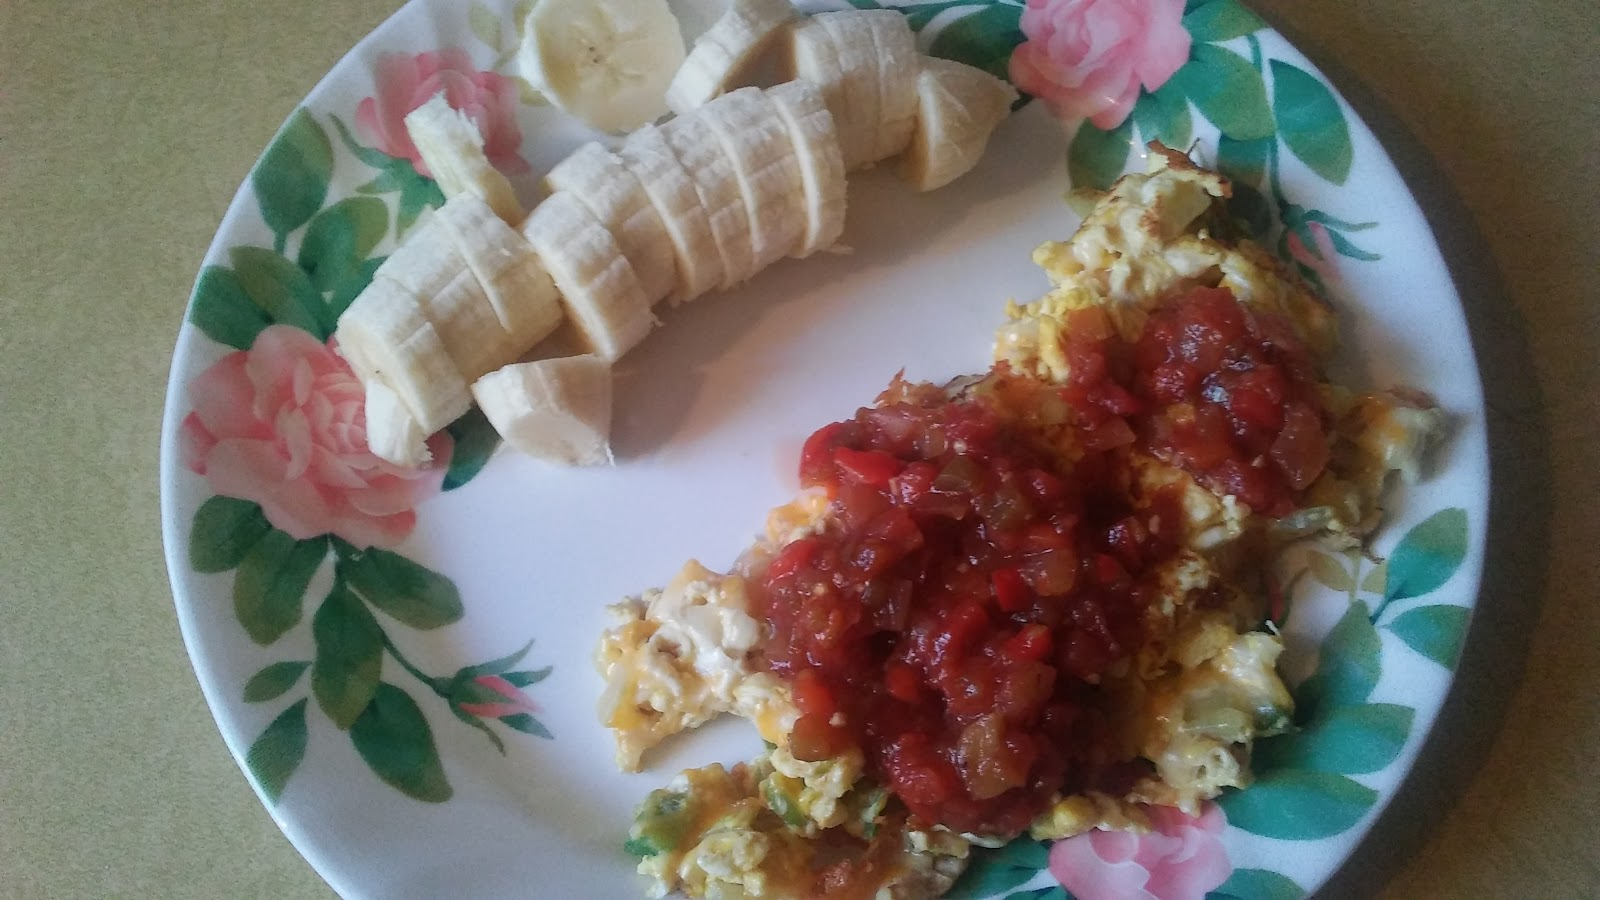 ... Day At A Time: Southwestern style egg scramble (new recipe #6 of 2017